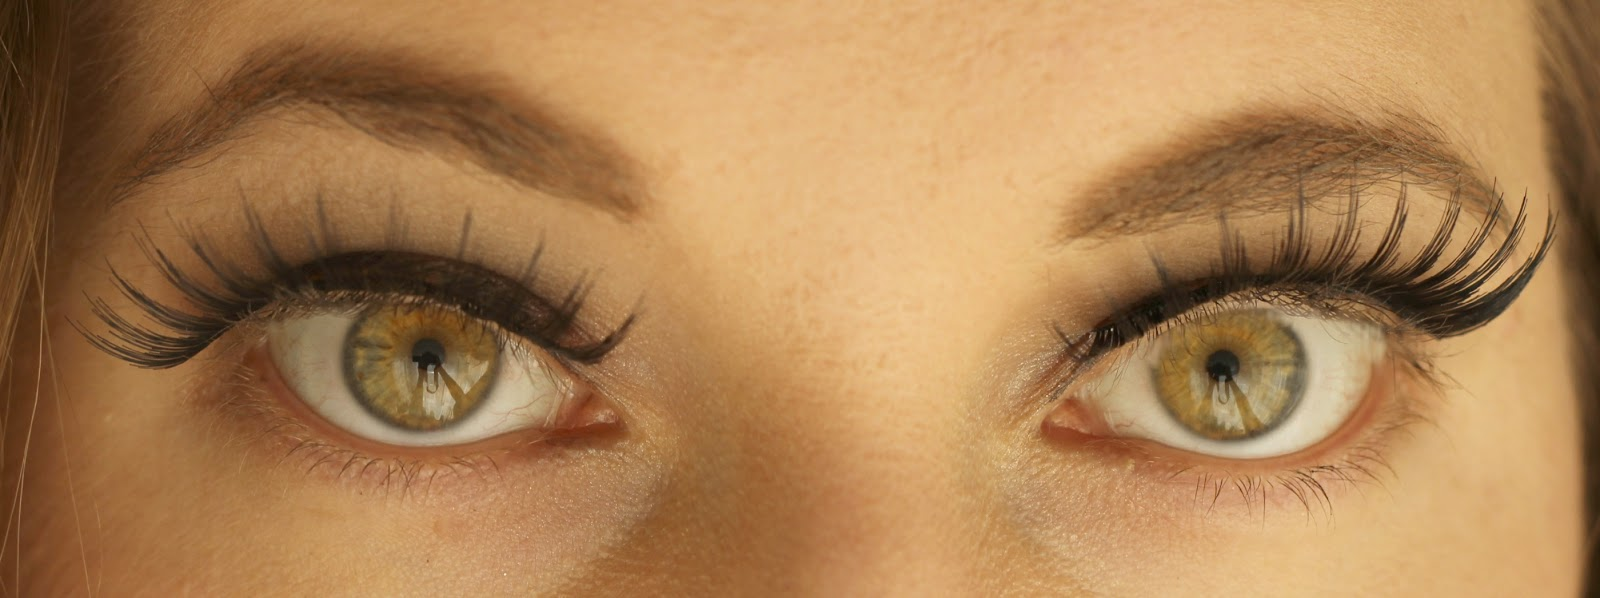 New Make Up For Ever Lash Show Instant Drama False Lashes In C 705